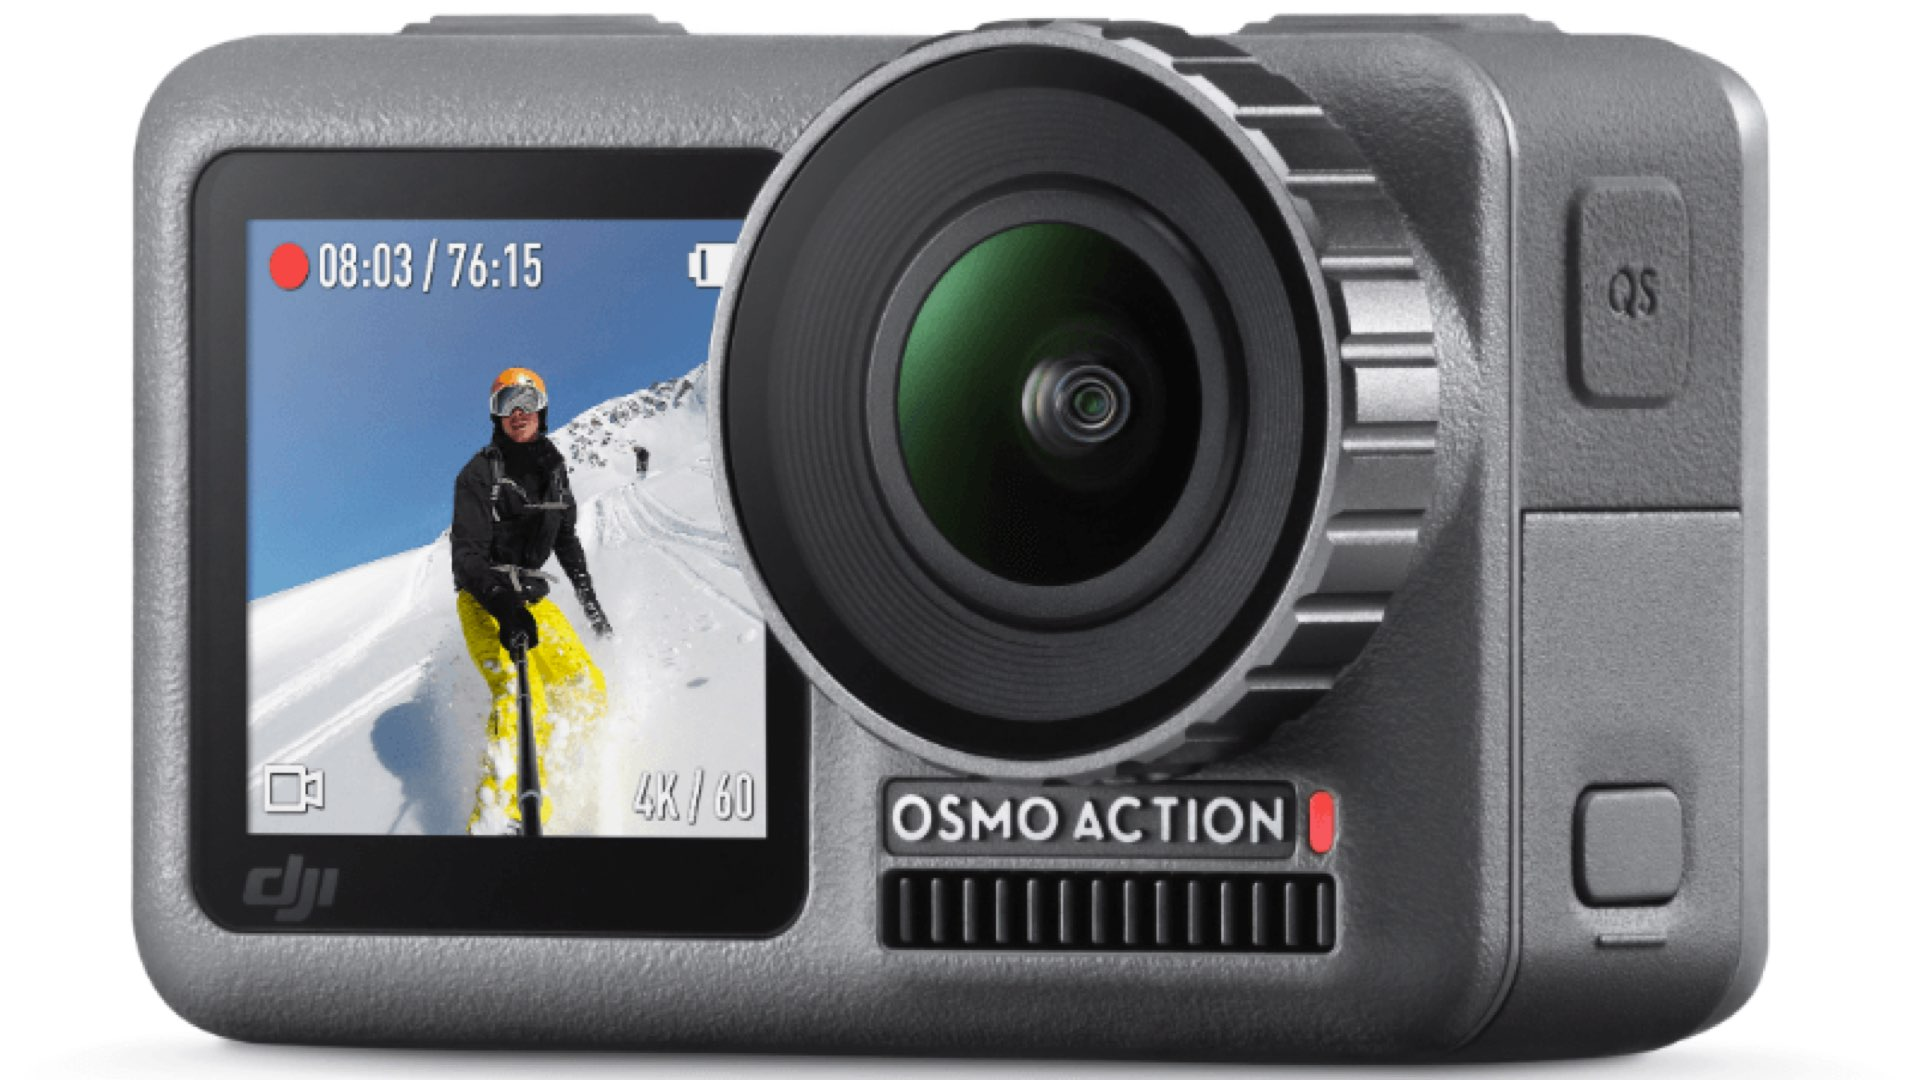 The Osmo Pocket with the Hasselblad Camera is (Probably) Going to be